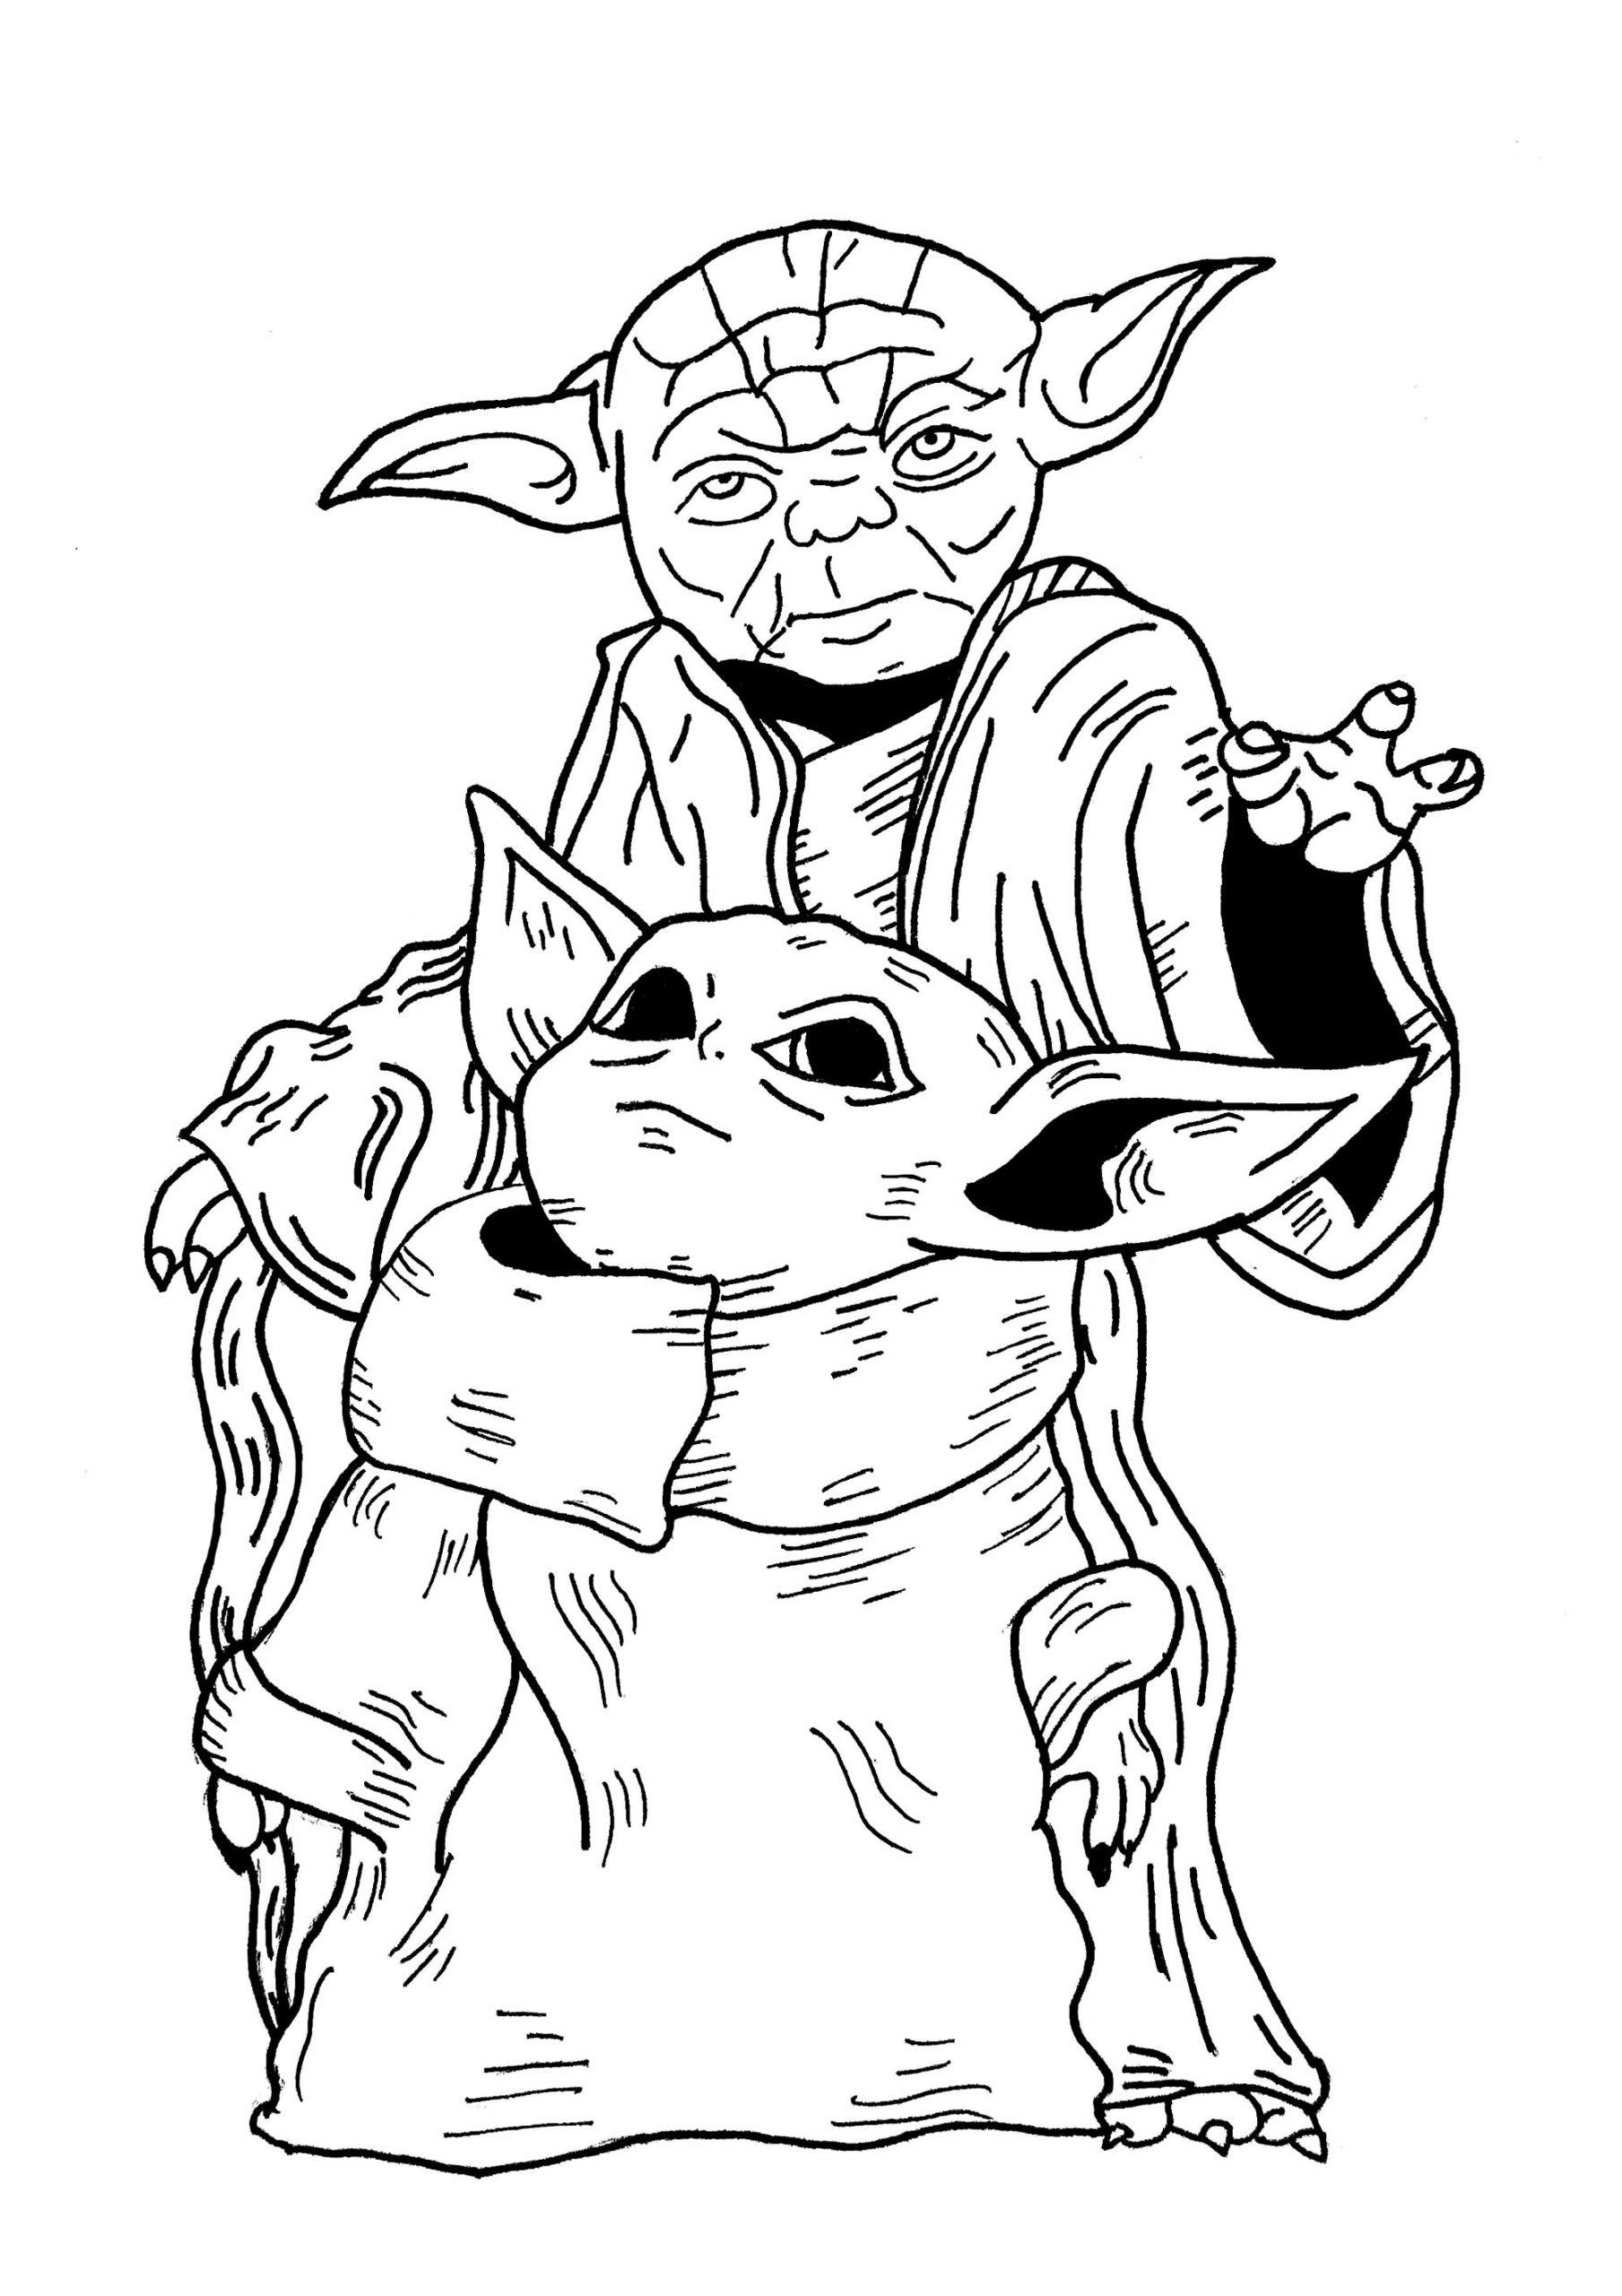 Star Wars Coloring Pages Master Yoda And Baby Yoda Star Wars Coloring Pages Small Yet Star Wars Coloring Book Star Wars Coloring Sheet Star Wars Drawings